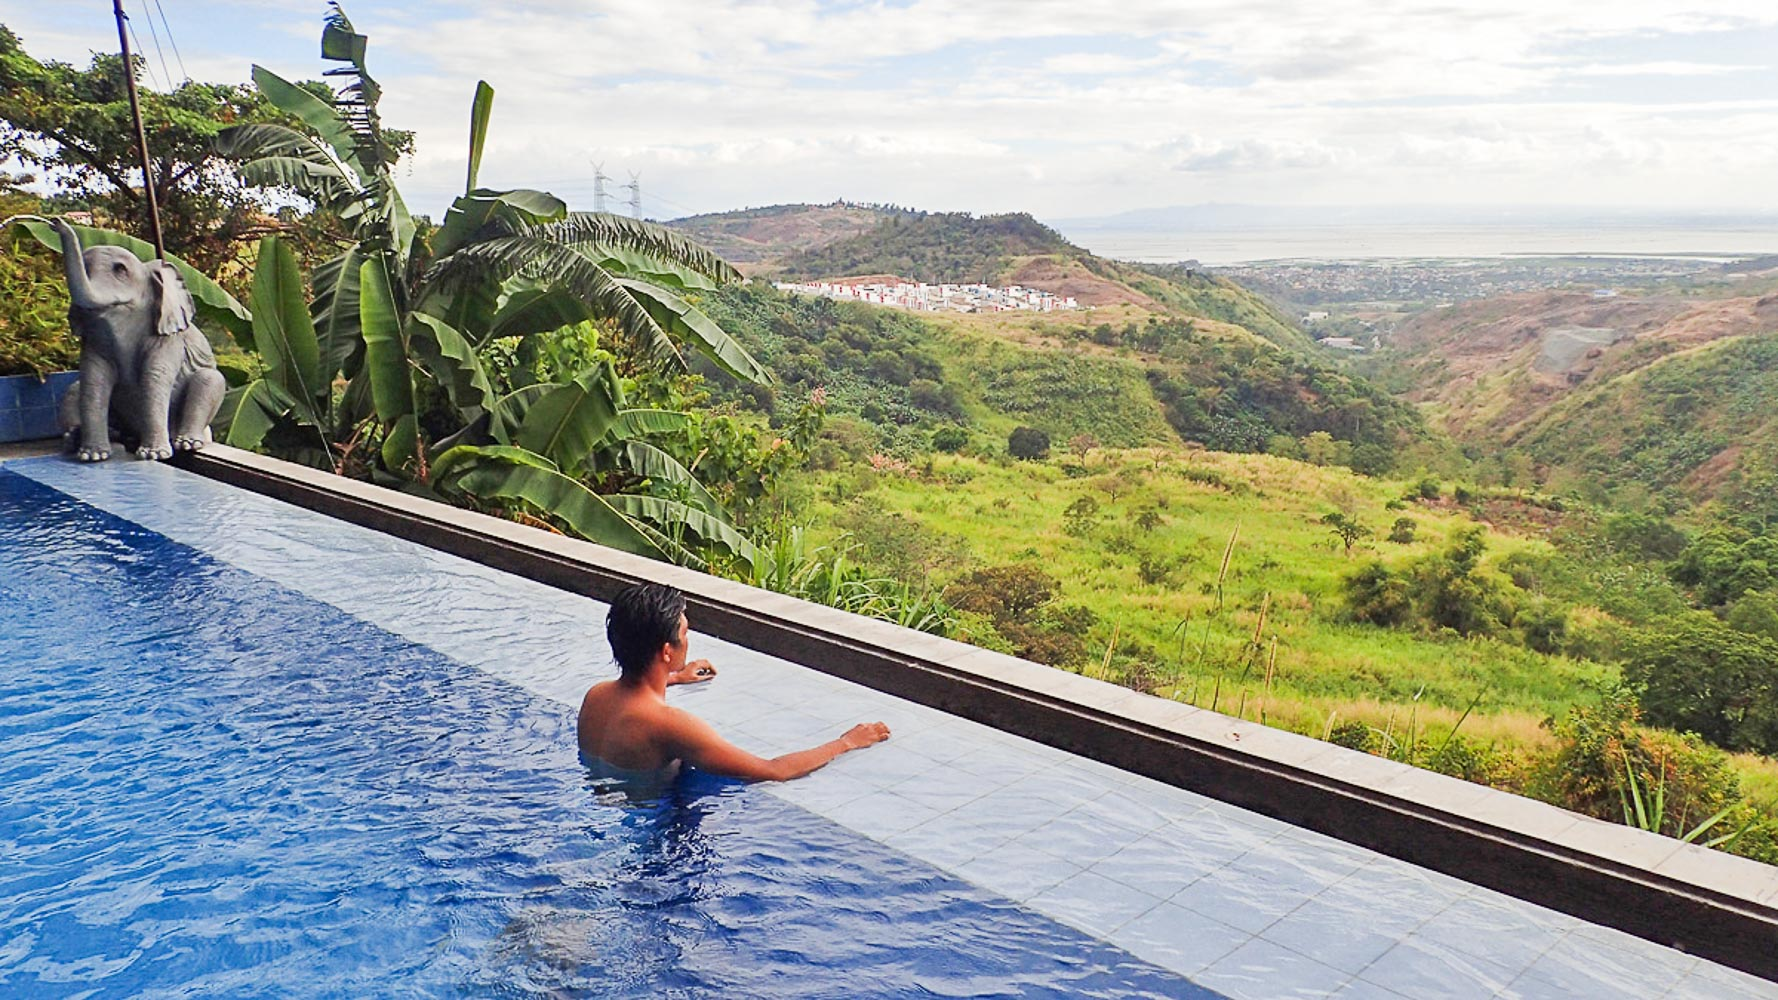 POOLSIDE. Gorgeous views at Luljetta's infinity pool. Photo by Rhea Claire Madarang